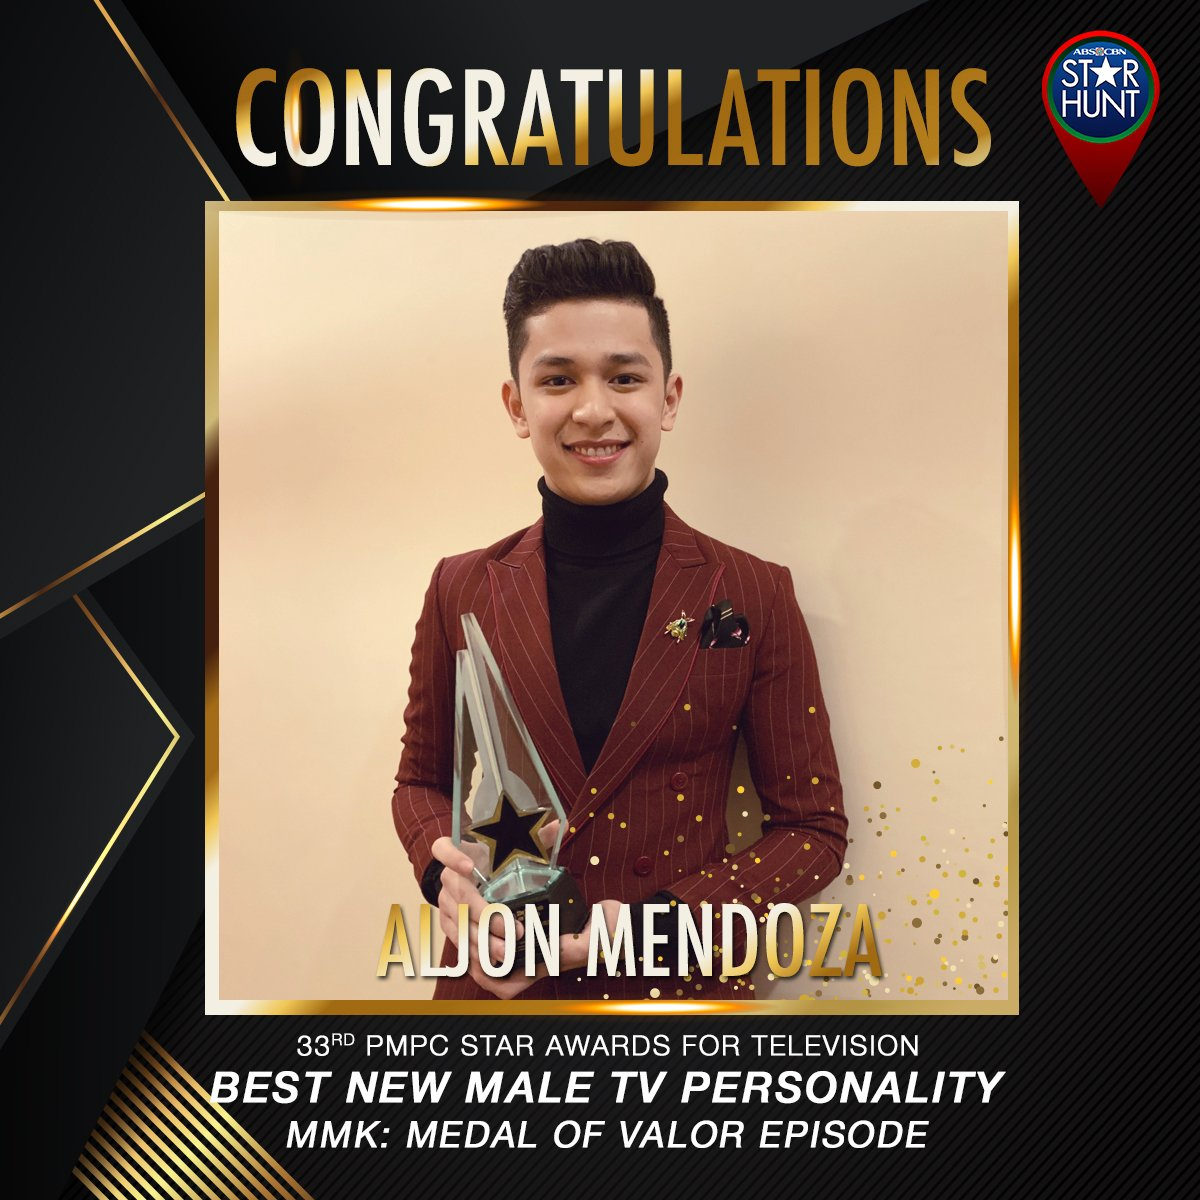 CONGRATULATIONS @AljonMendoza_ for winning this year's BEST NEW MALE TV PERSONALITY at the 33RD PMPC Star Awards for Television! We're so proud of you <br>http://pic.twitter.com/99vuMF4NB8